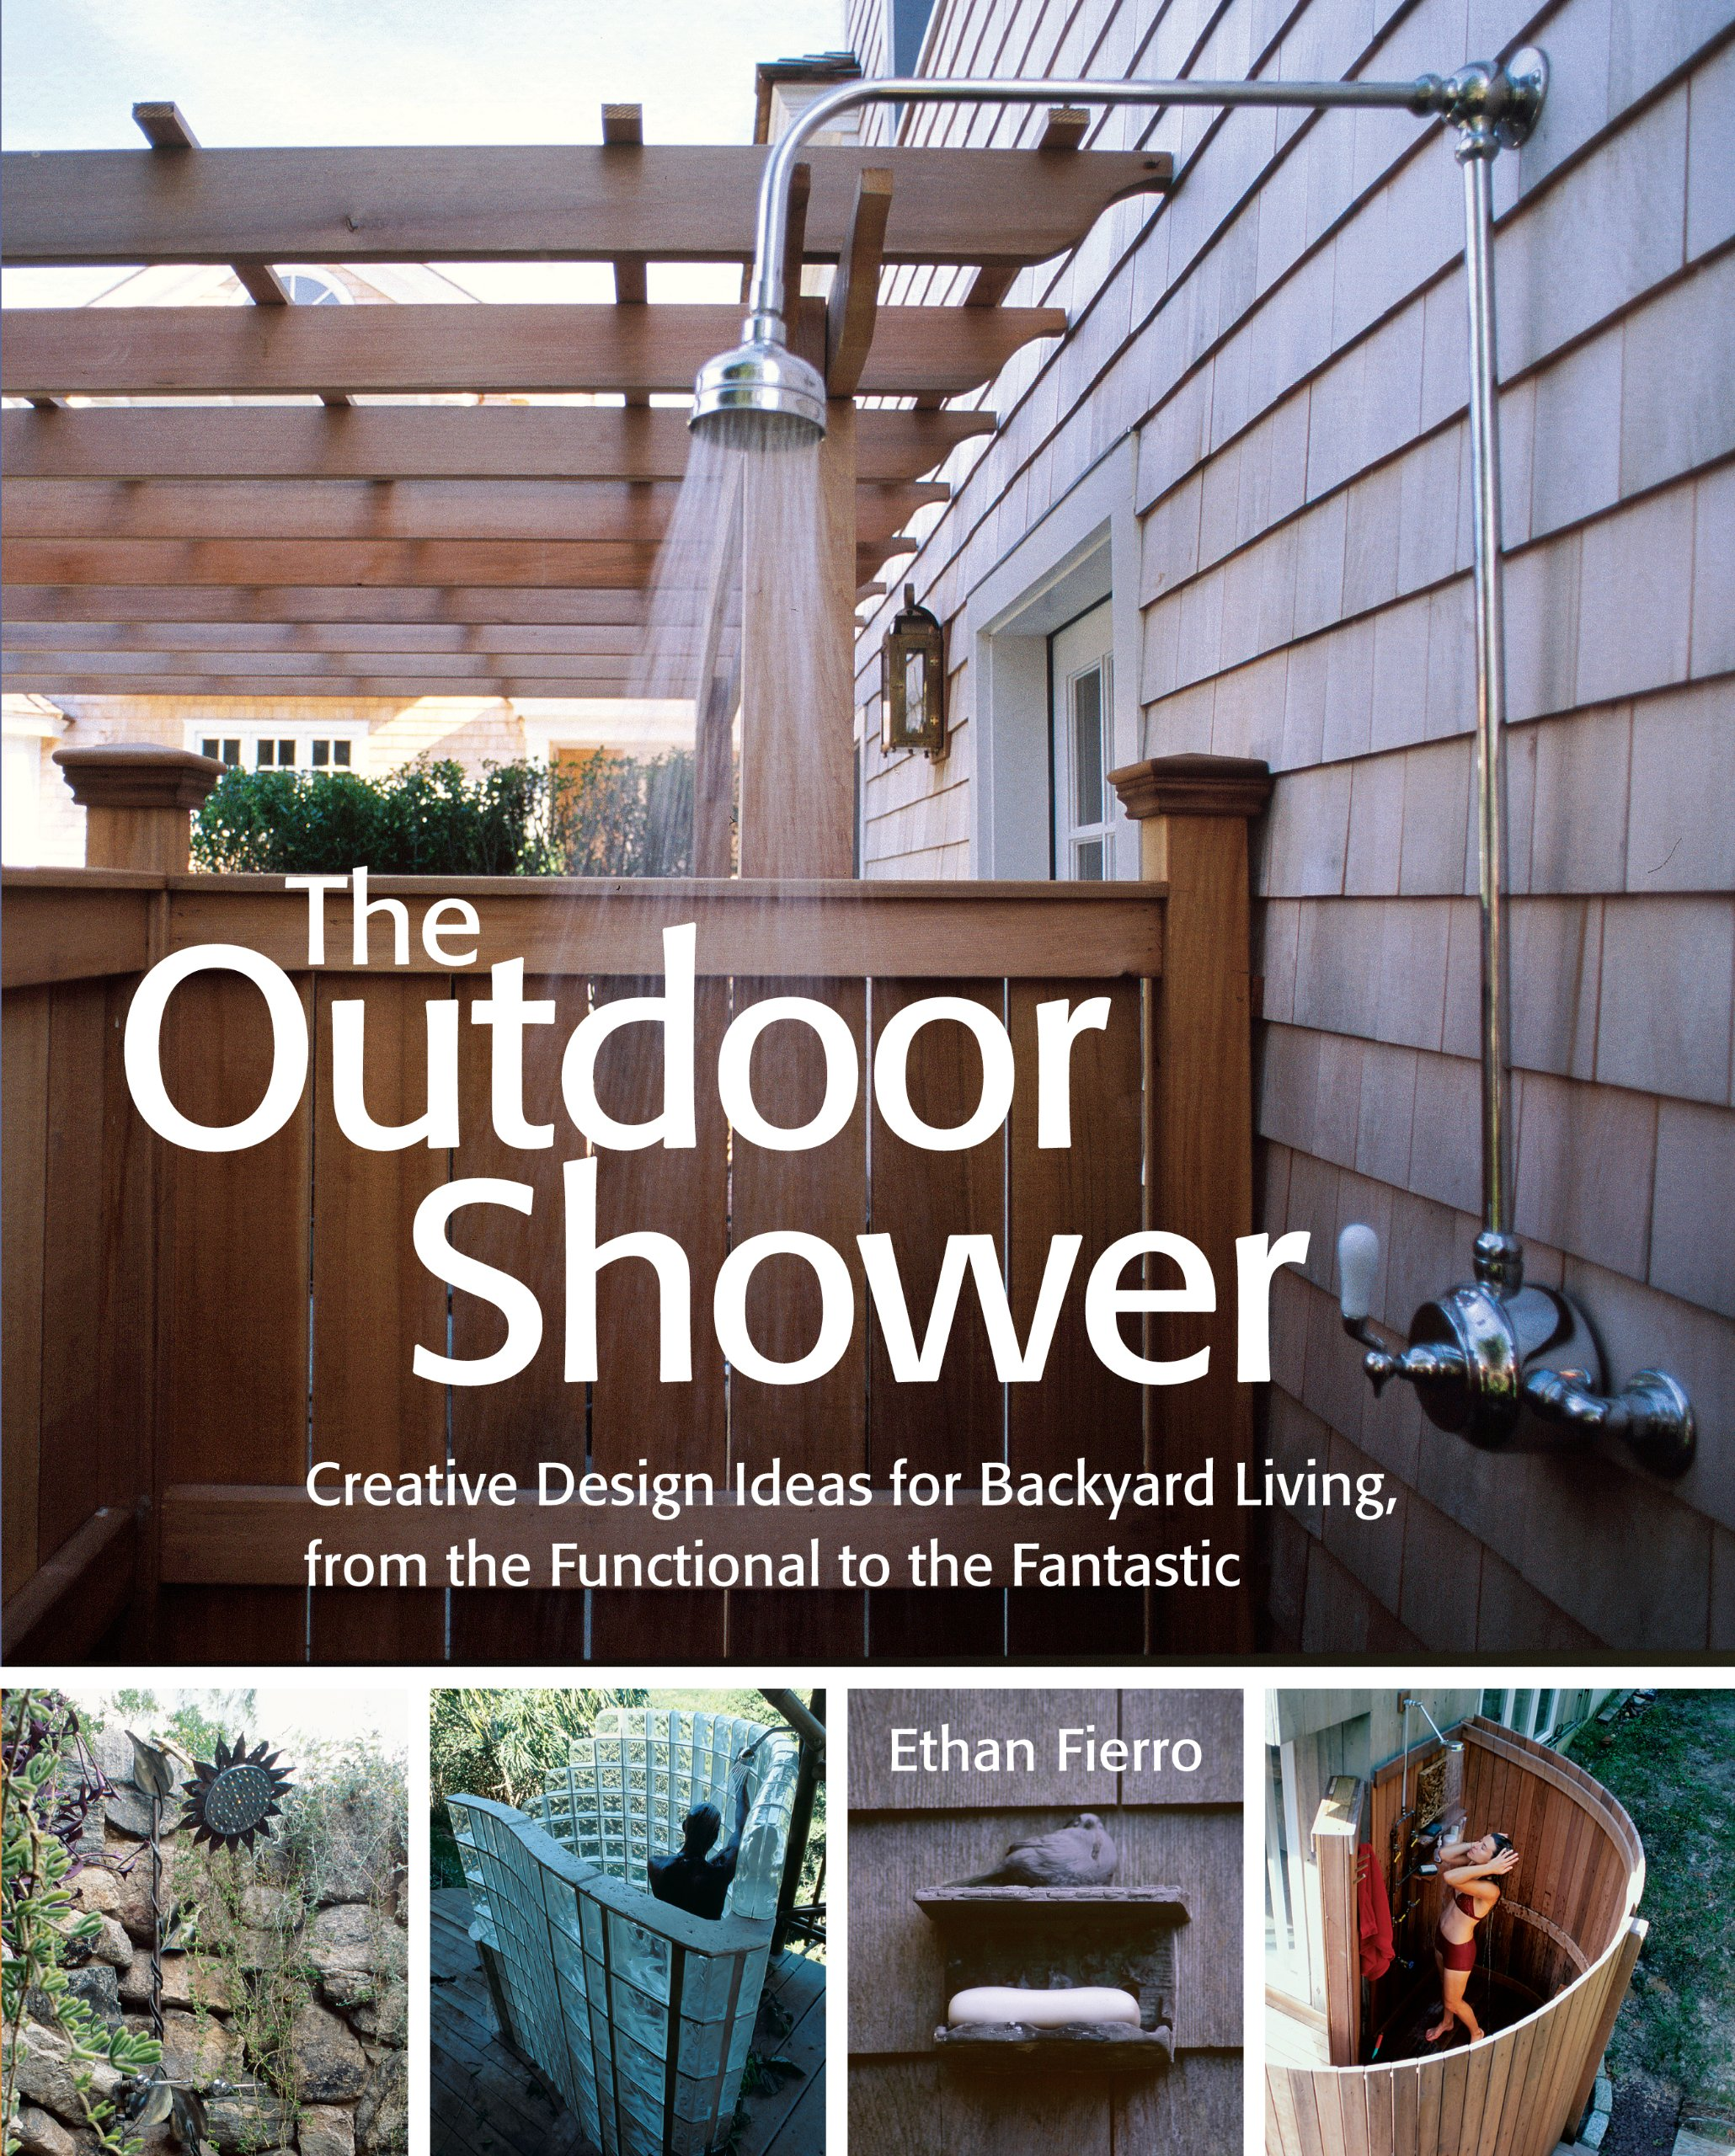 The Outdoor Shower: Creative Design Ideas For Backyard Living, From The  Functional To The Fantastic: Ethan Fierro: 9781580175524: Amazon.com: Books